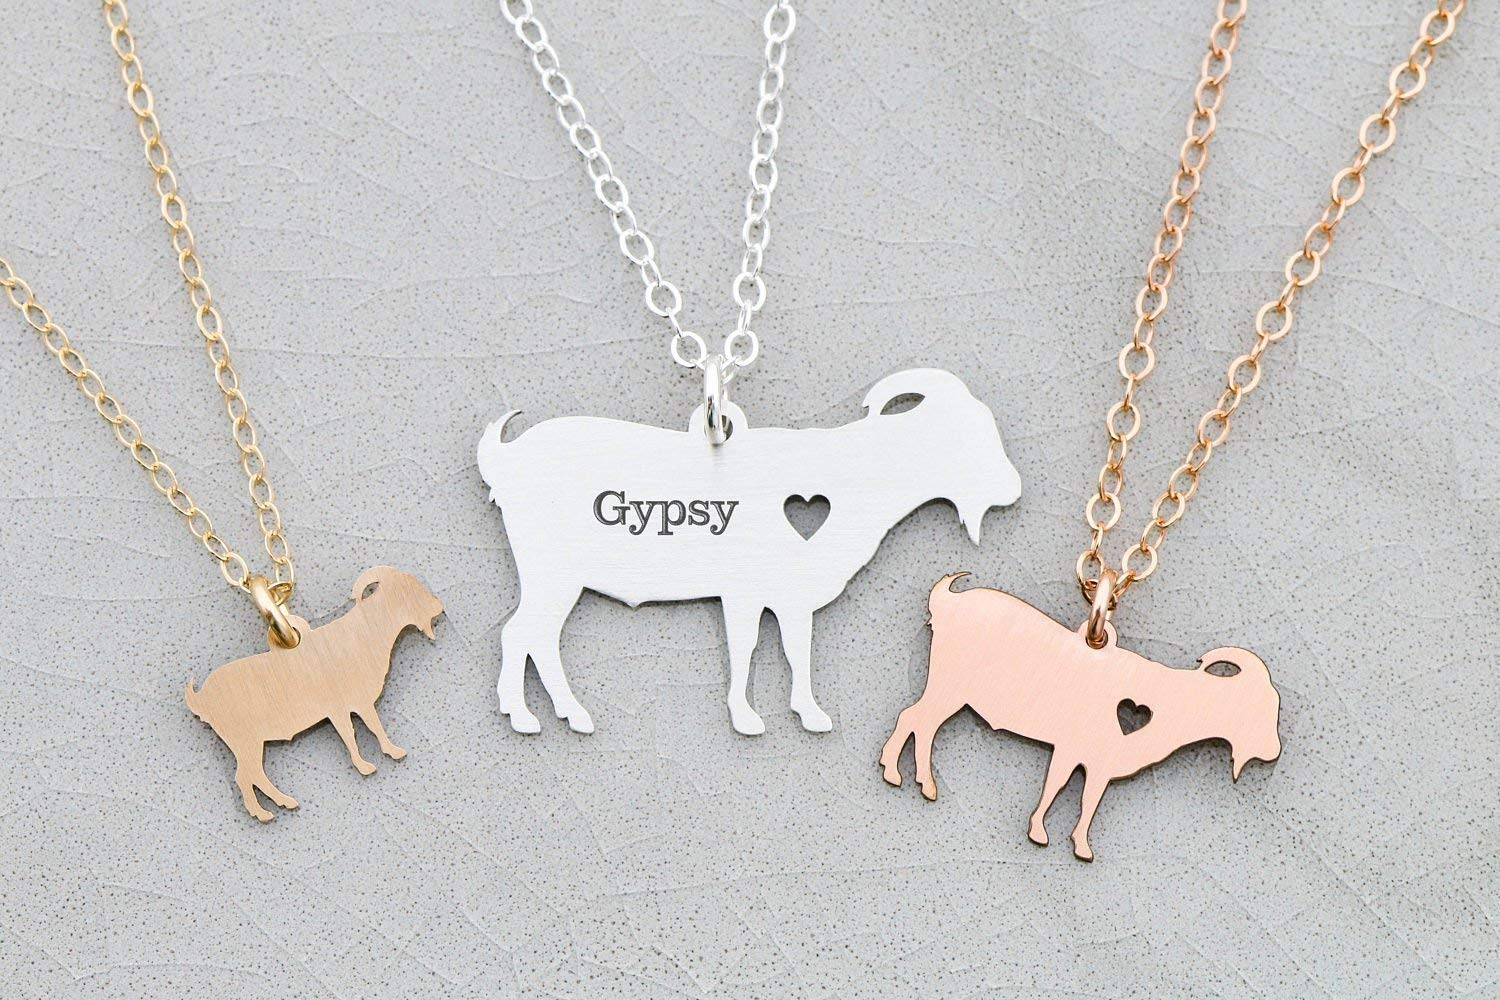 Goat Necklace - Billy Pygmy - IBD - Personalize with Name or Date - Choose Chain Length - Pendant Size Options - 935 Sterling Silver 14K Rose Gold Filled - Ships in 1 Business Day